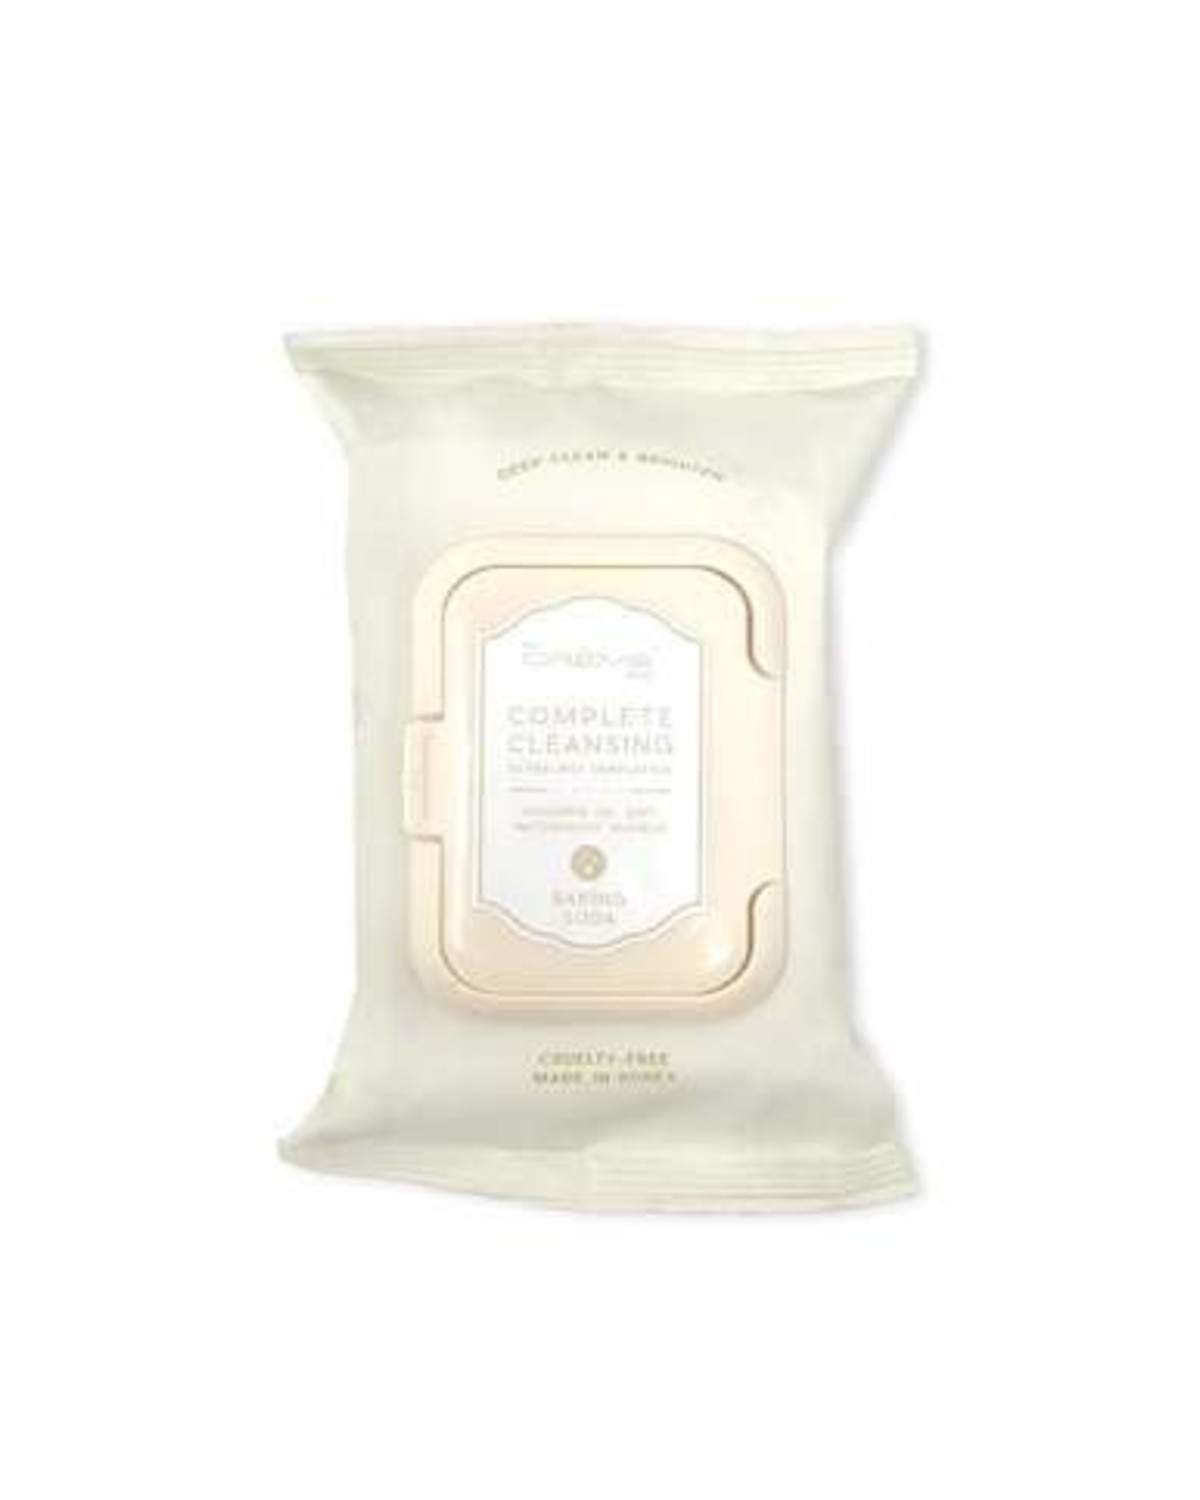 Baking Soda Make Up Cleansing Wipes